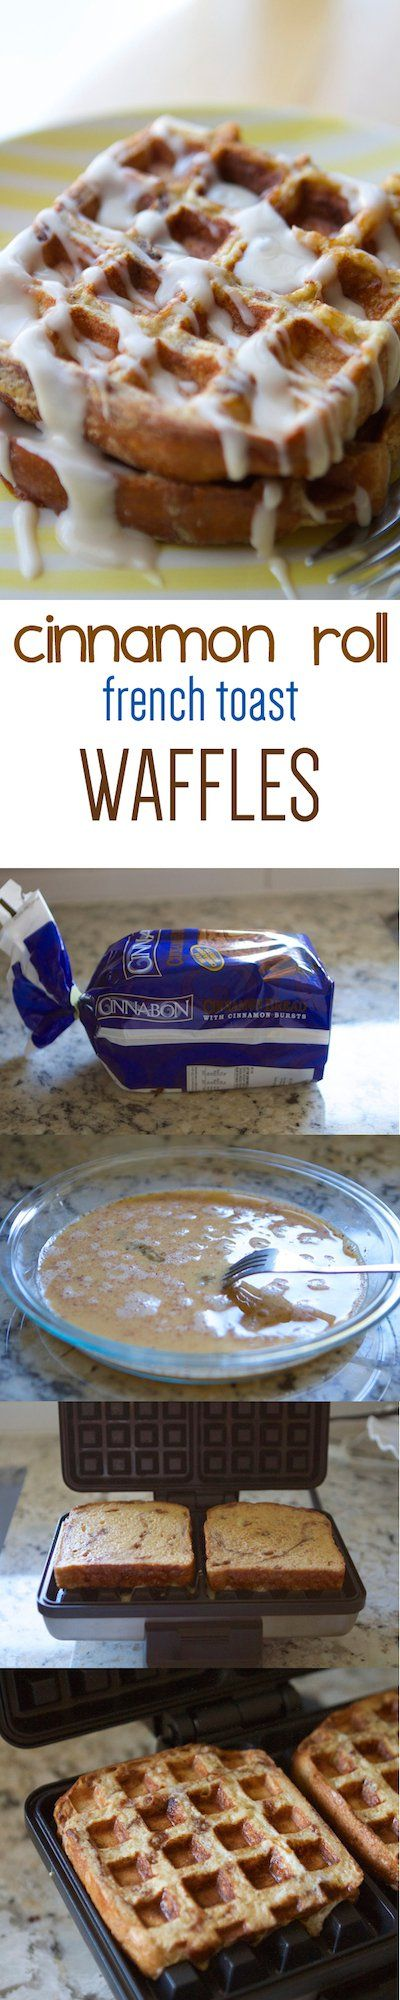 Cinnamon Roll French Toast Waffles – Lauren's Latest